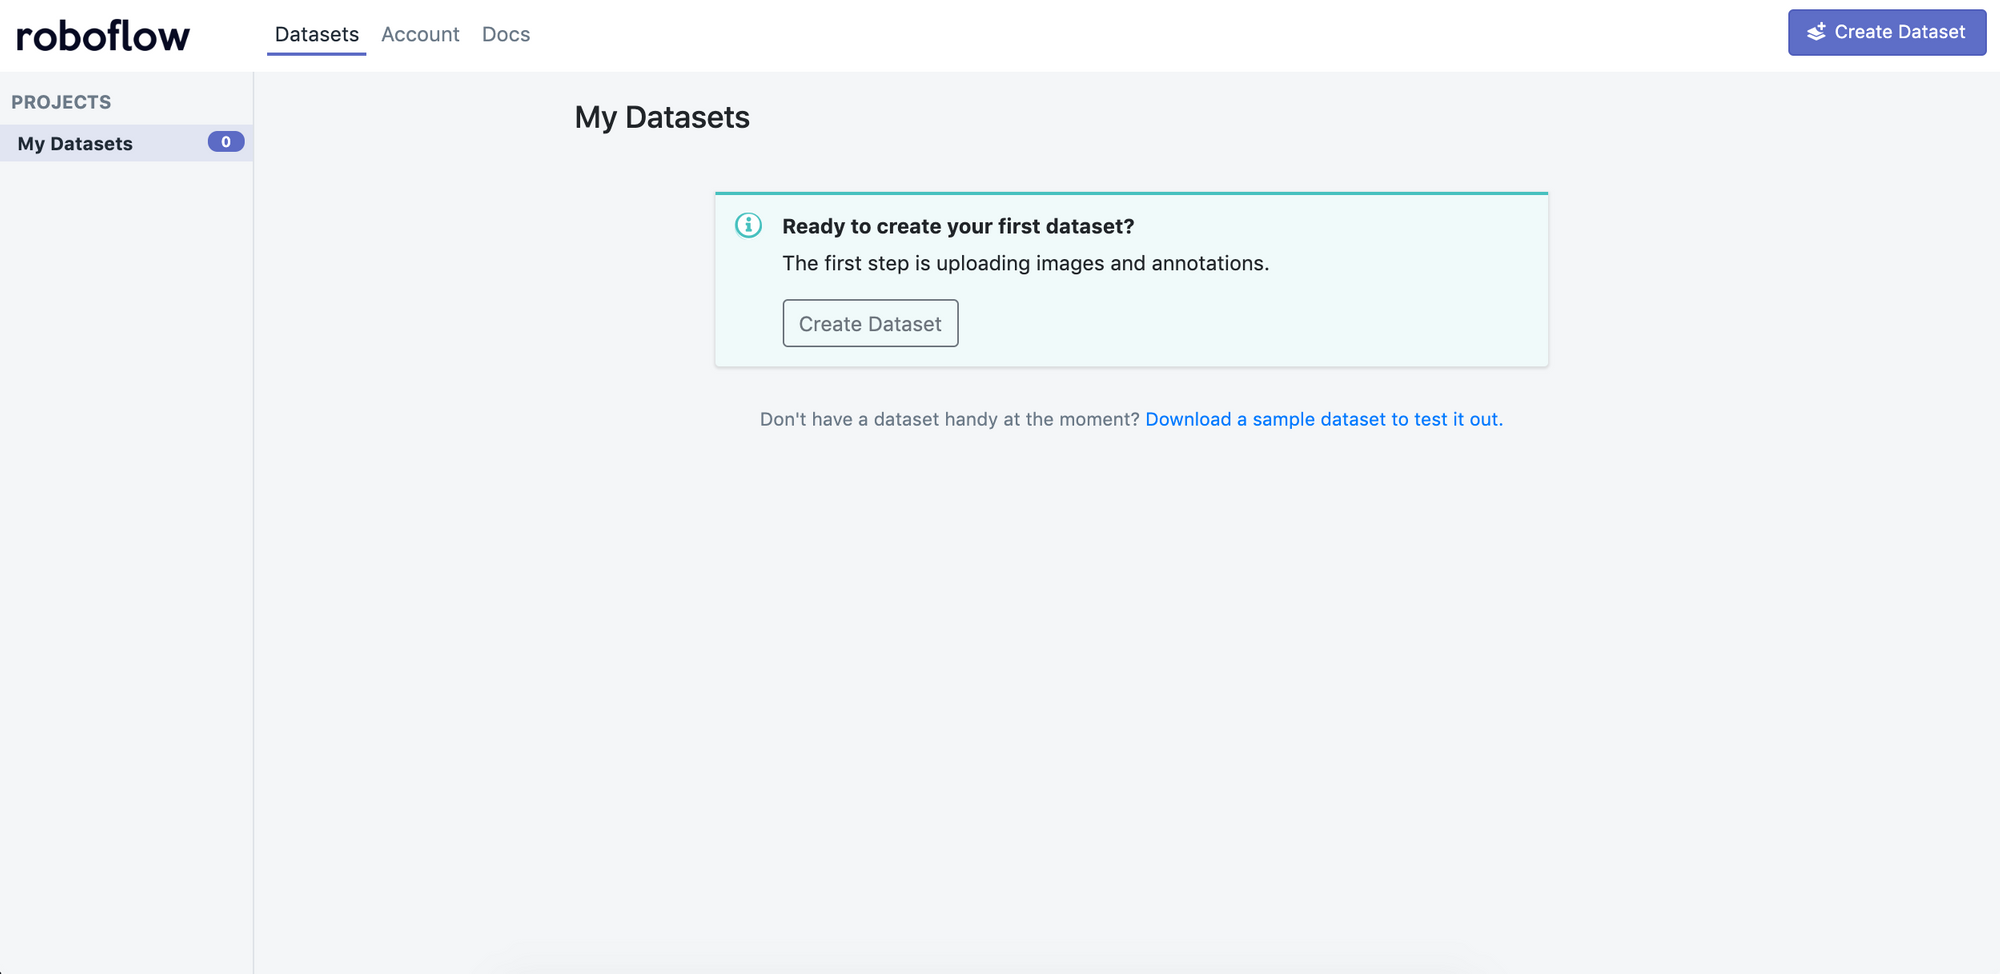 Roboflow Screenshot: Empty datastes page (Ready to create your first dataset?)